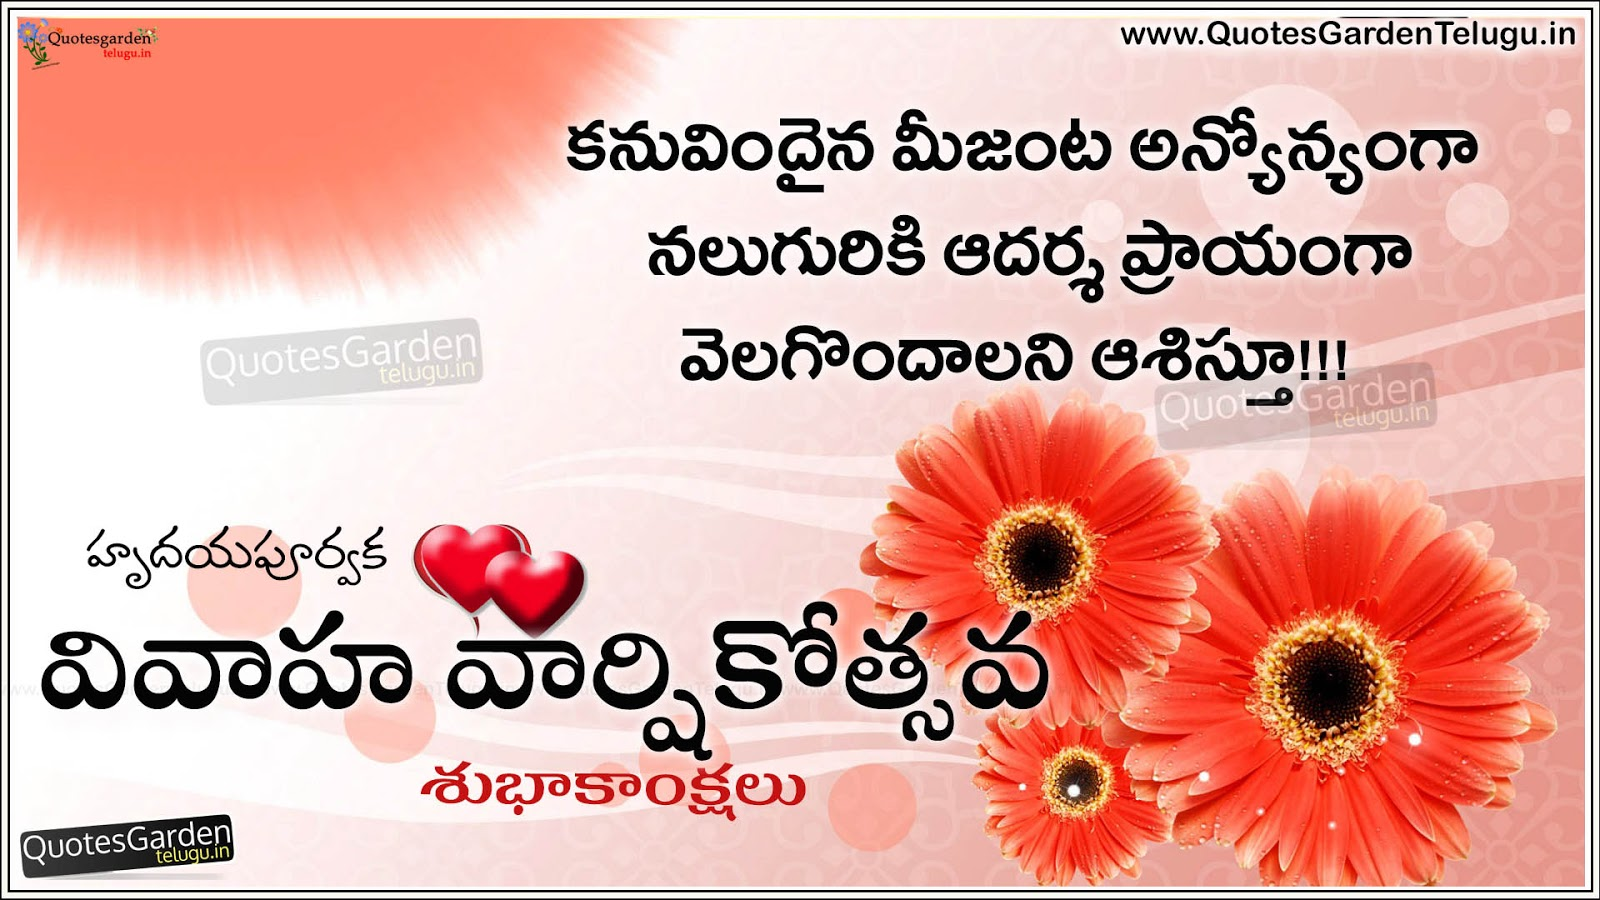 Happy Married Life Quotes Telugu